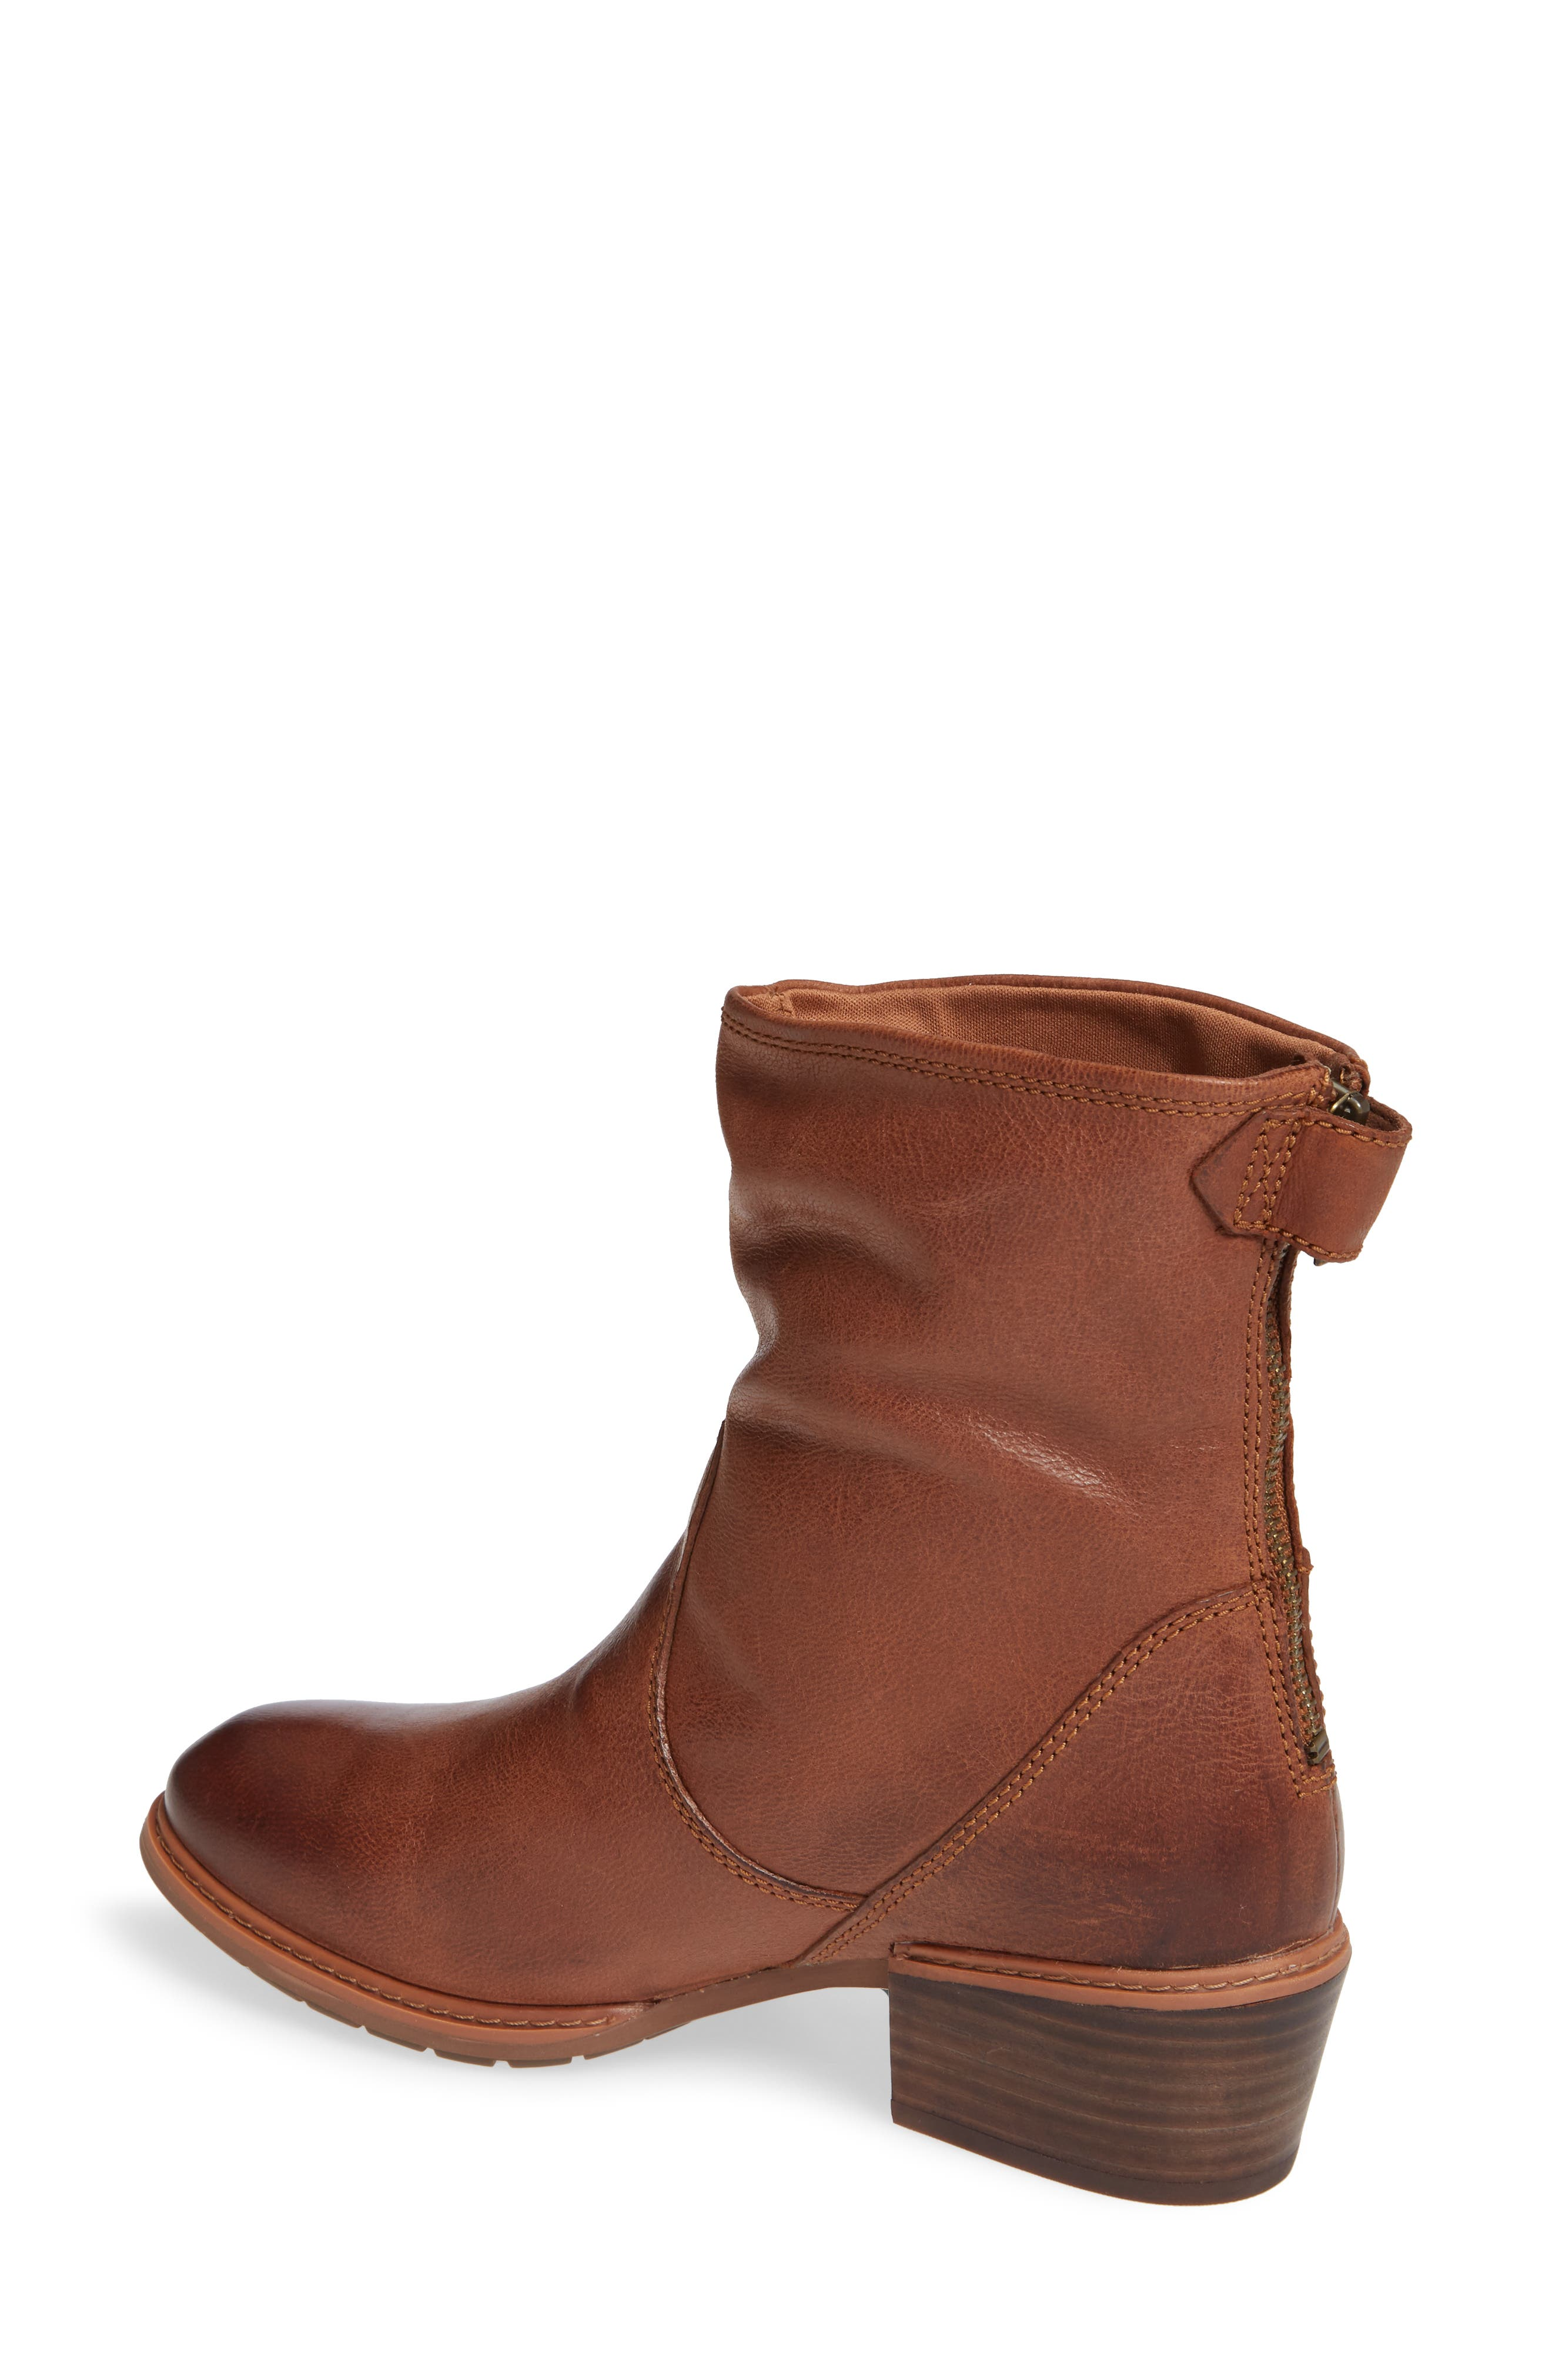 Sutherlin Bay Water Resistant Bootie,                             Alternate thumbnail 2, color,                             ARGAN OIL LEATHER